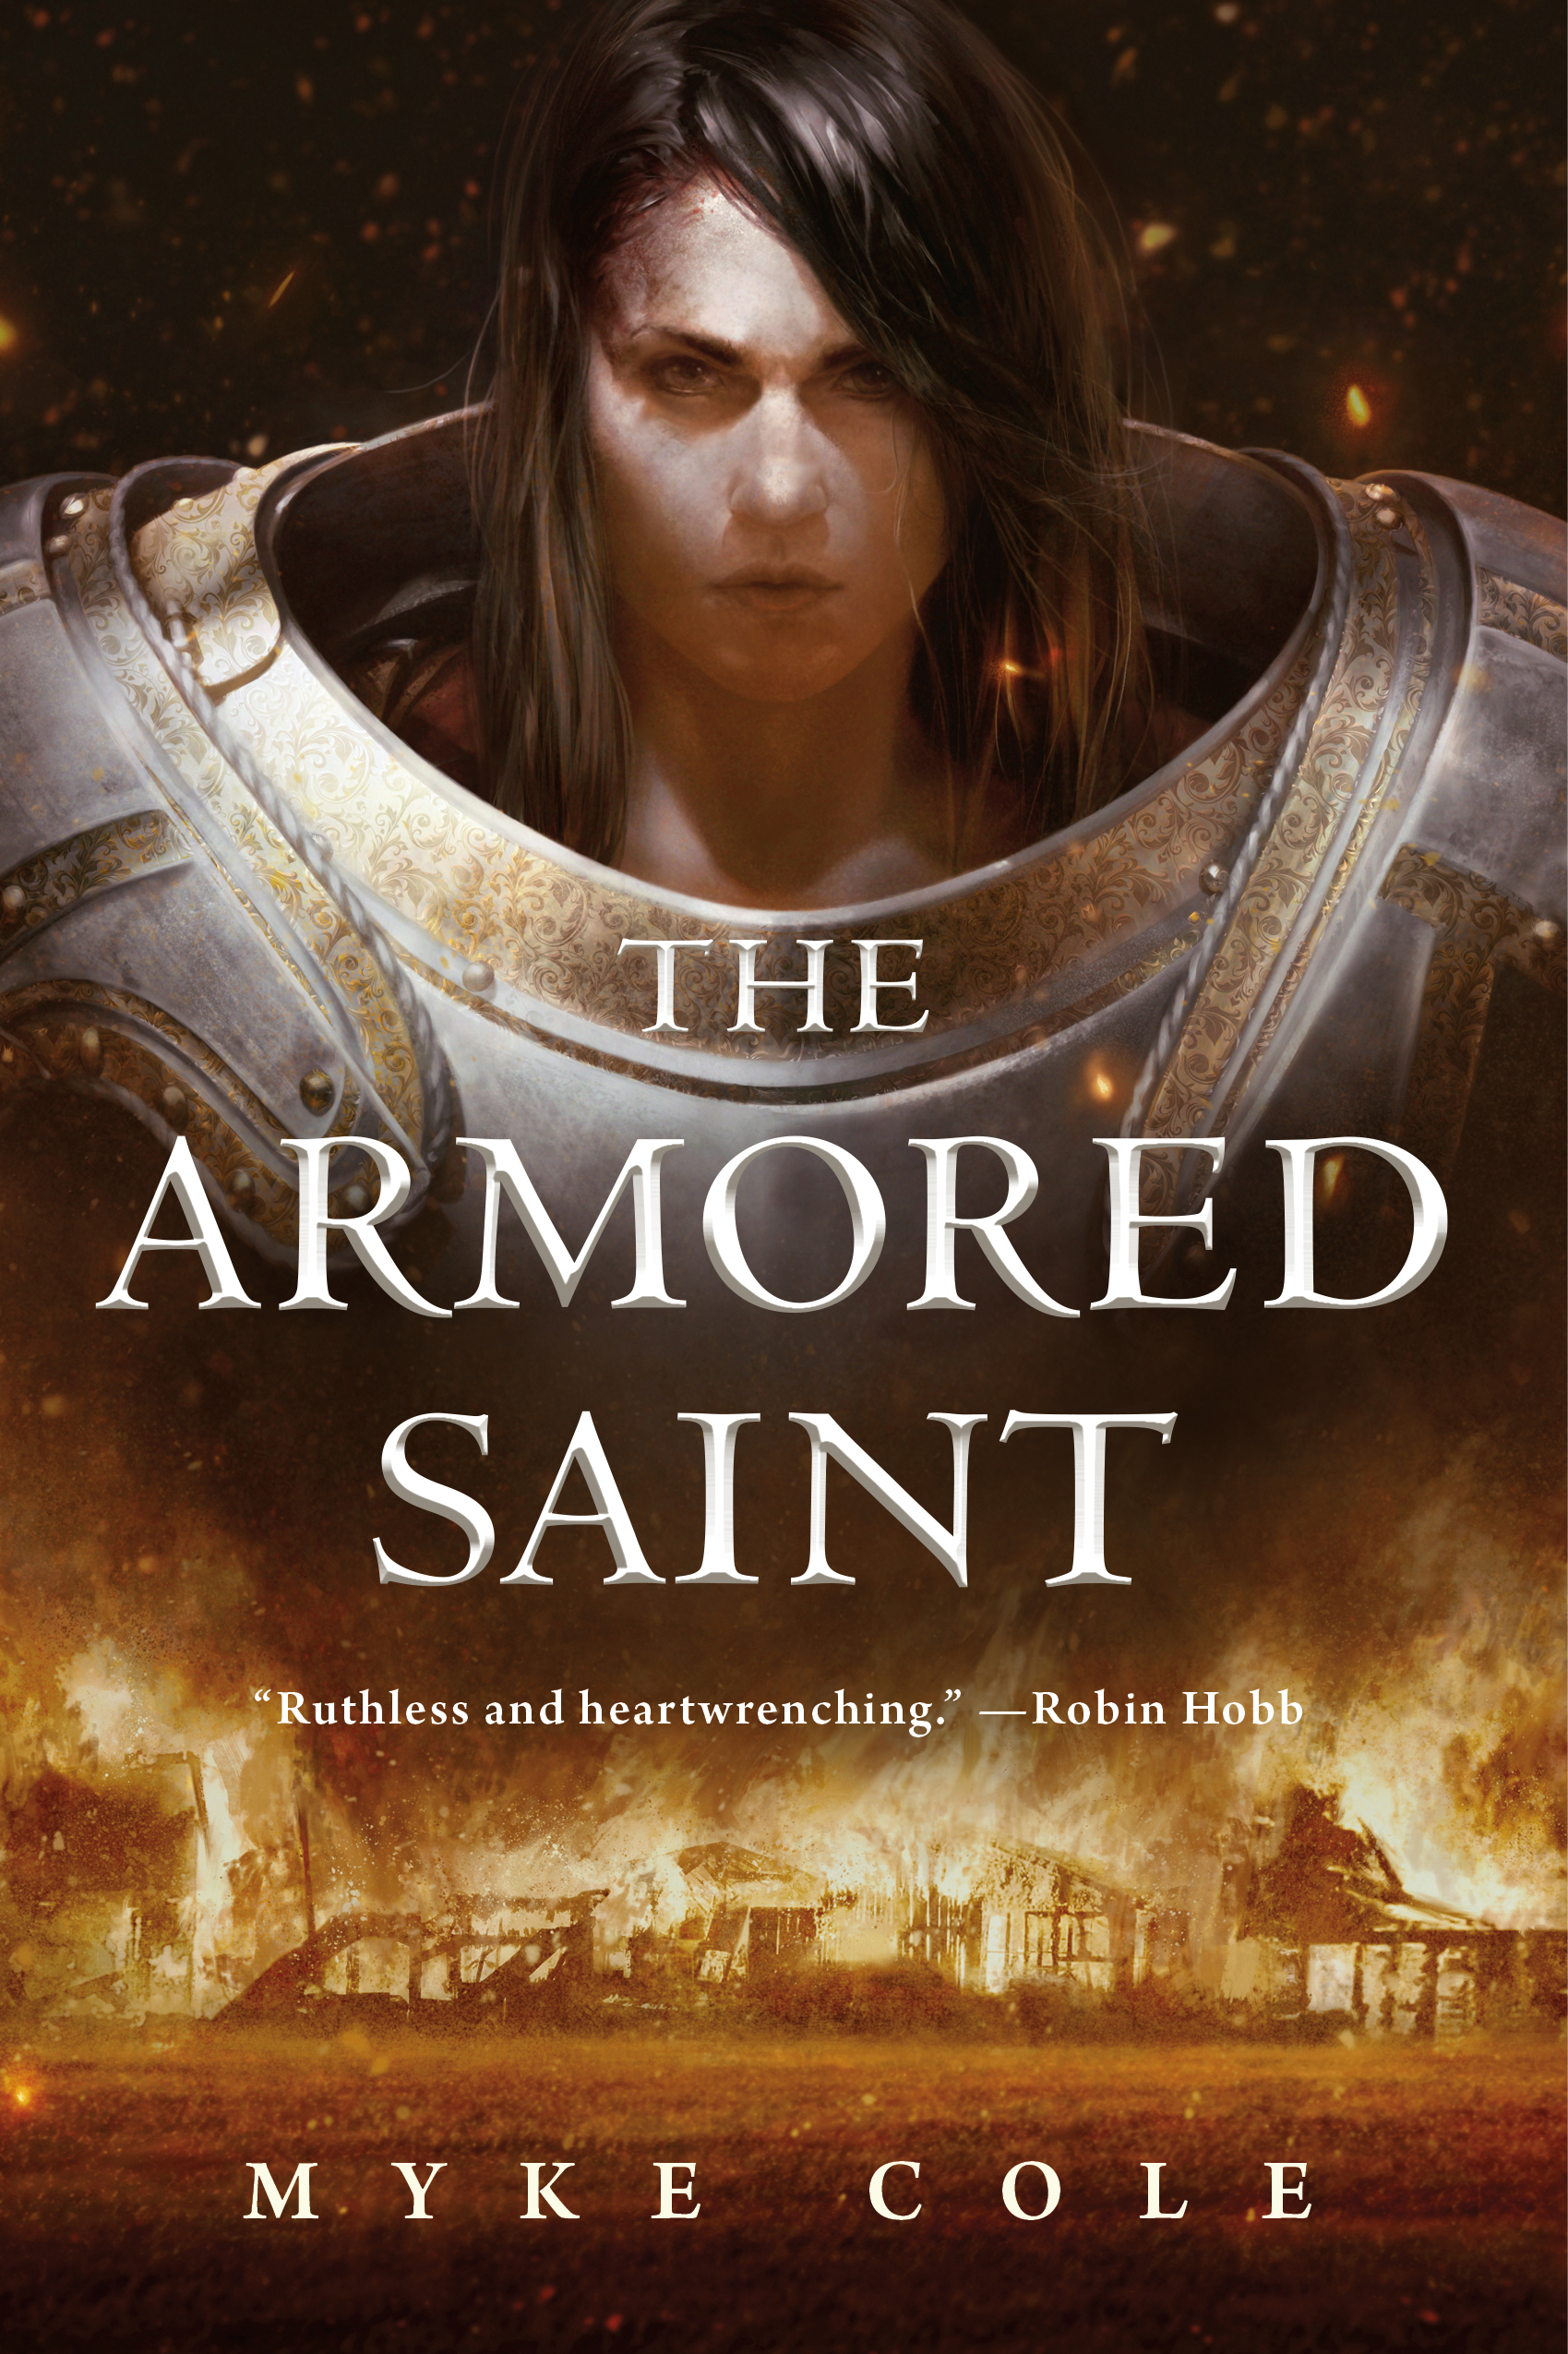 The Cover of Myke Cole's novel, The Armored Saint